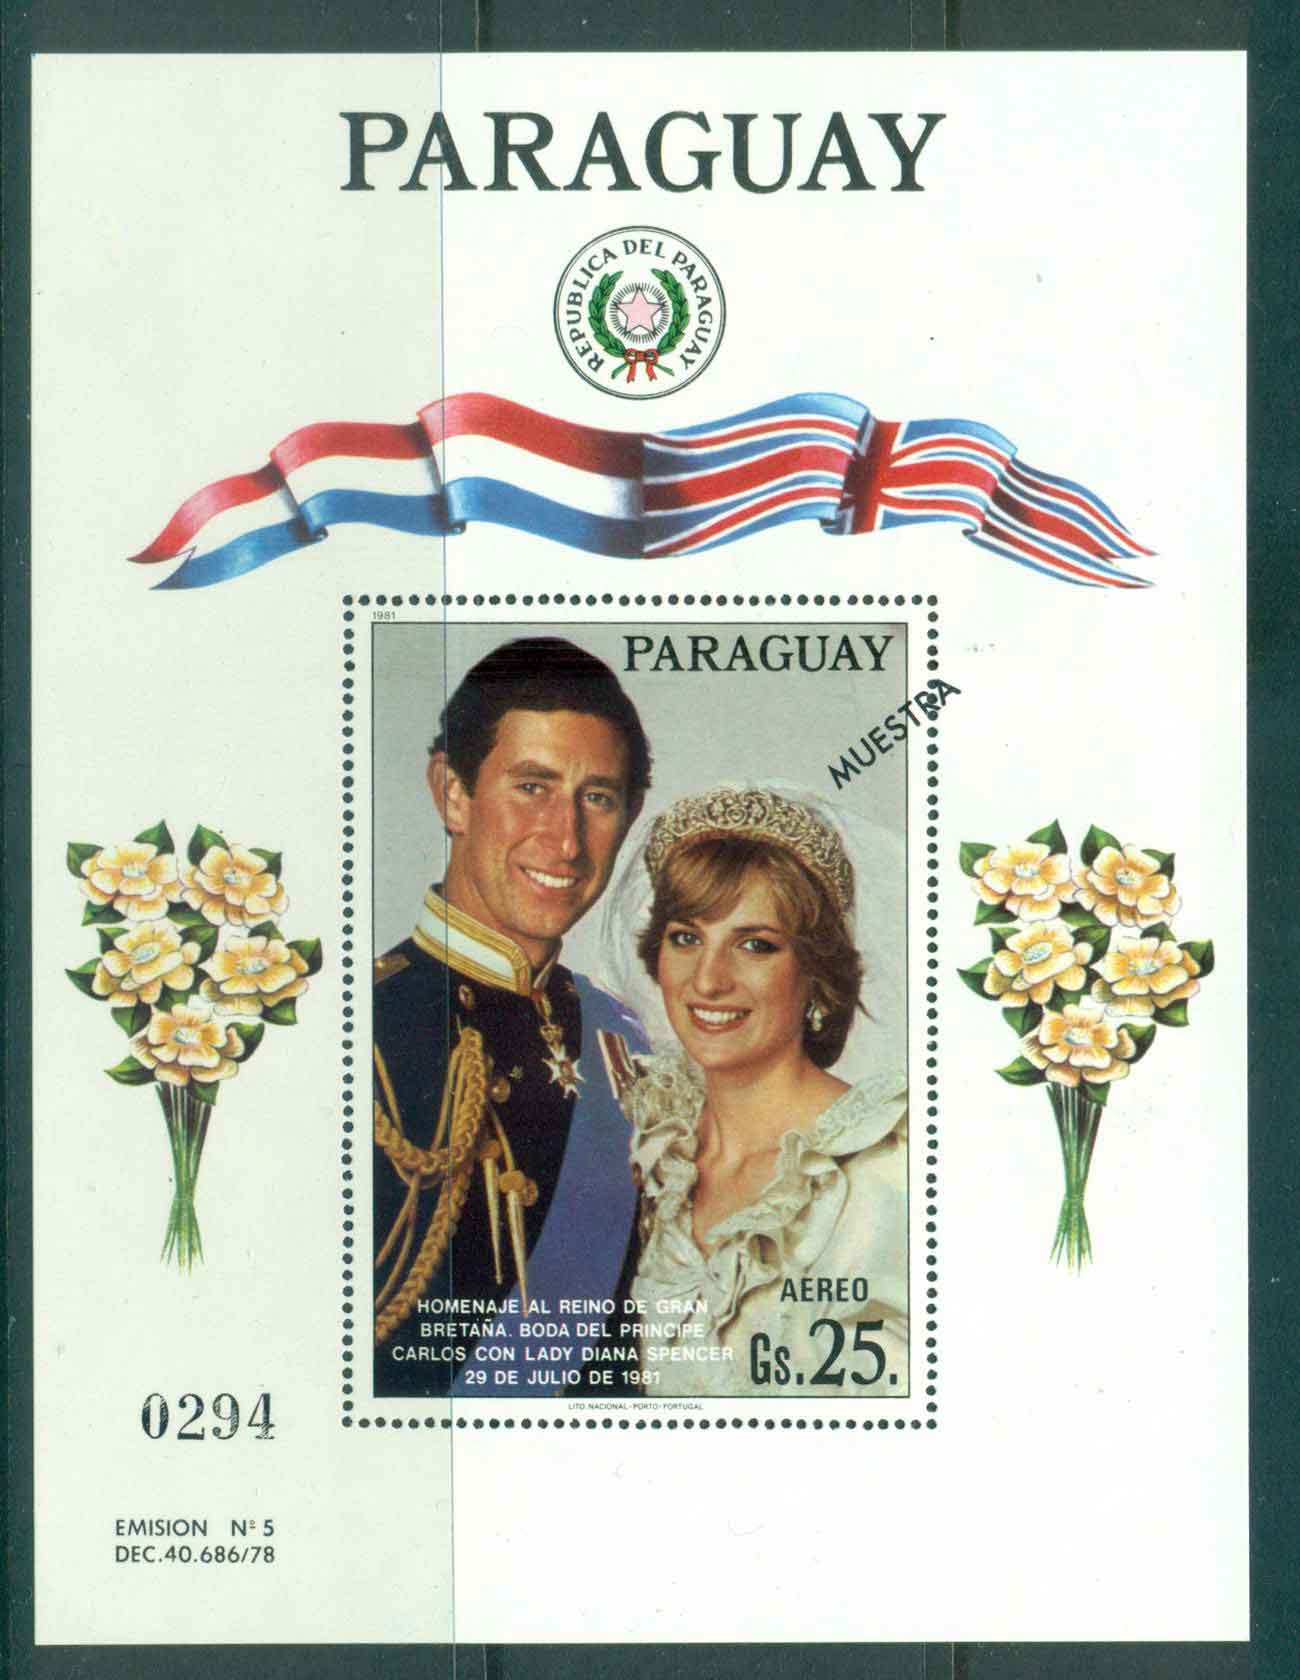 Paraguay 1981 Charles & Diana Wedding MS SPECIMEN MUH Lot45151